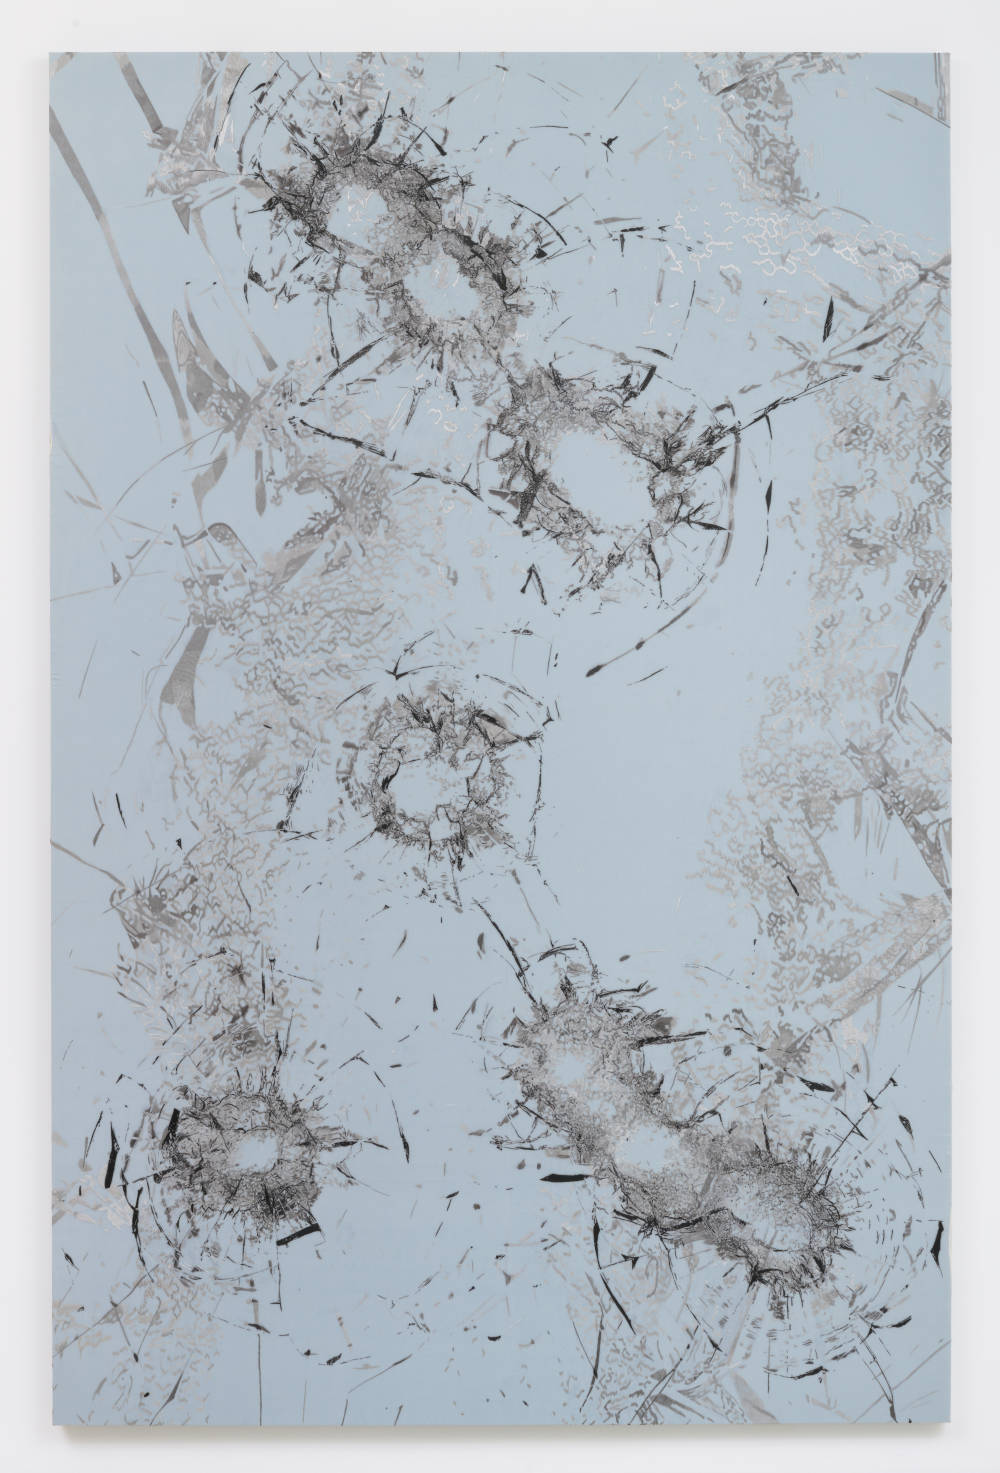 Zhao Zhao, Constellation 7, 2019. Embroidery on silk 117.32 x 77.16 inches (298 x 196 cm) Courtesy of the artist and Roberts Projects, Los Angeles, California